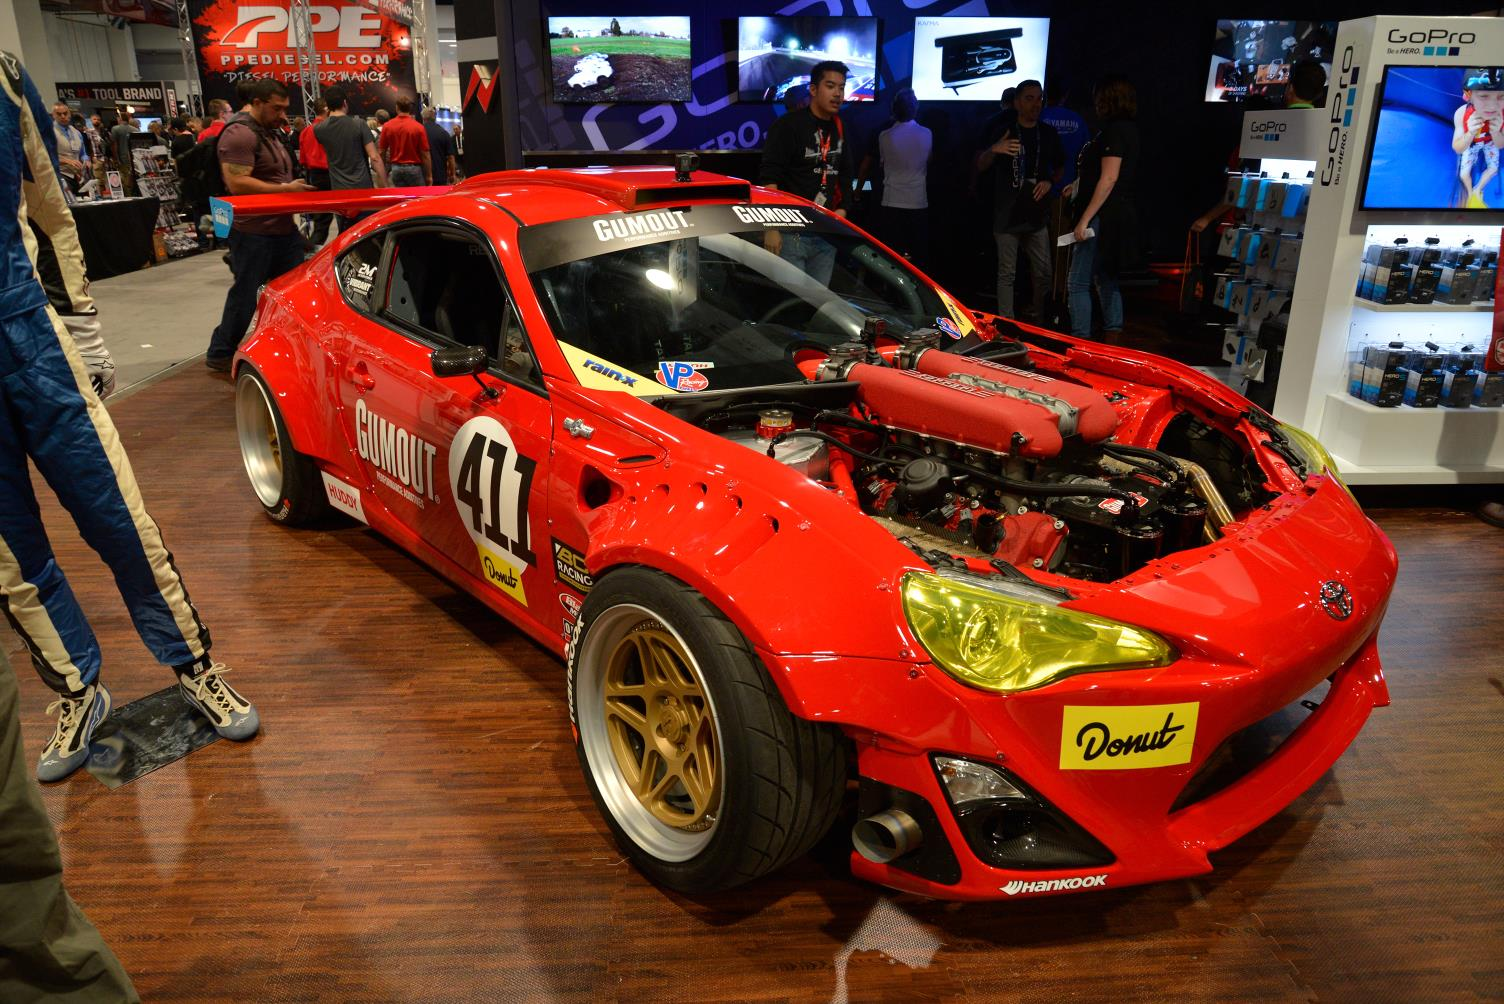 mustang builder with Sema 2016 Toyota Gt86 Ferrari 458 Engine on Sema 2016 Toyota Gt86 Ferrari 458 Engine additionally Suspension Packages further Confederate Unveils The Futuristic P51 G2  bat Fighter further Cac newparts likewise vintageair.